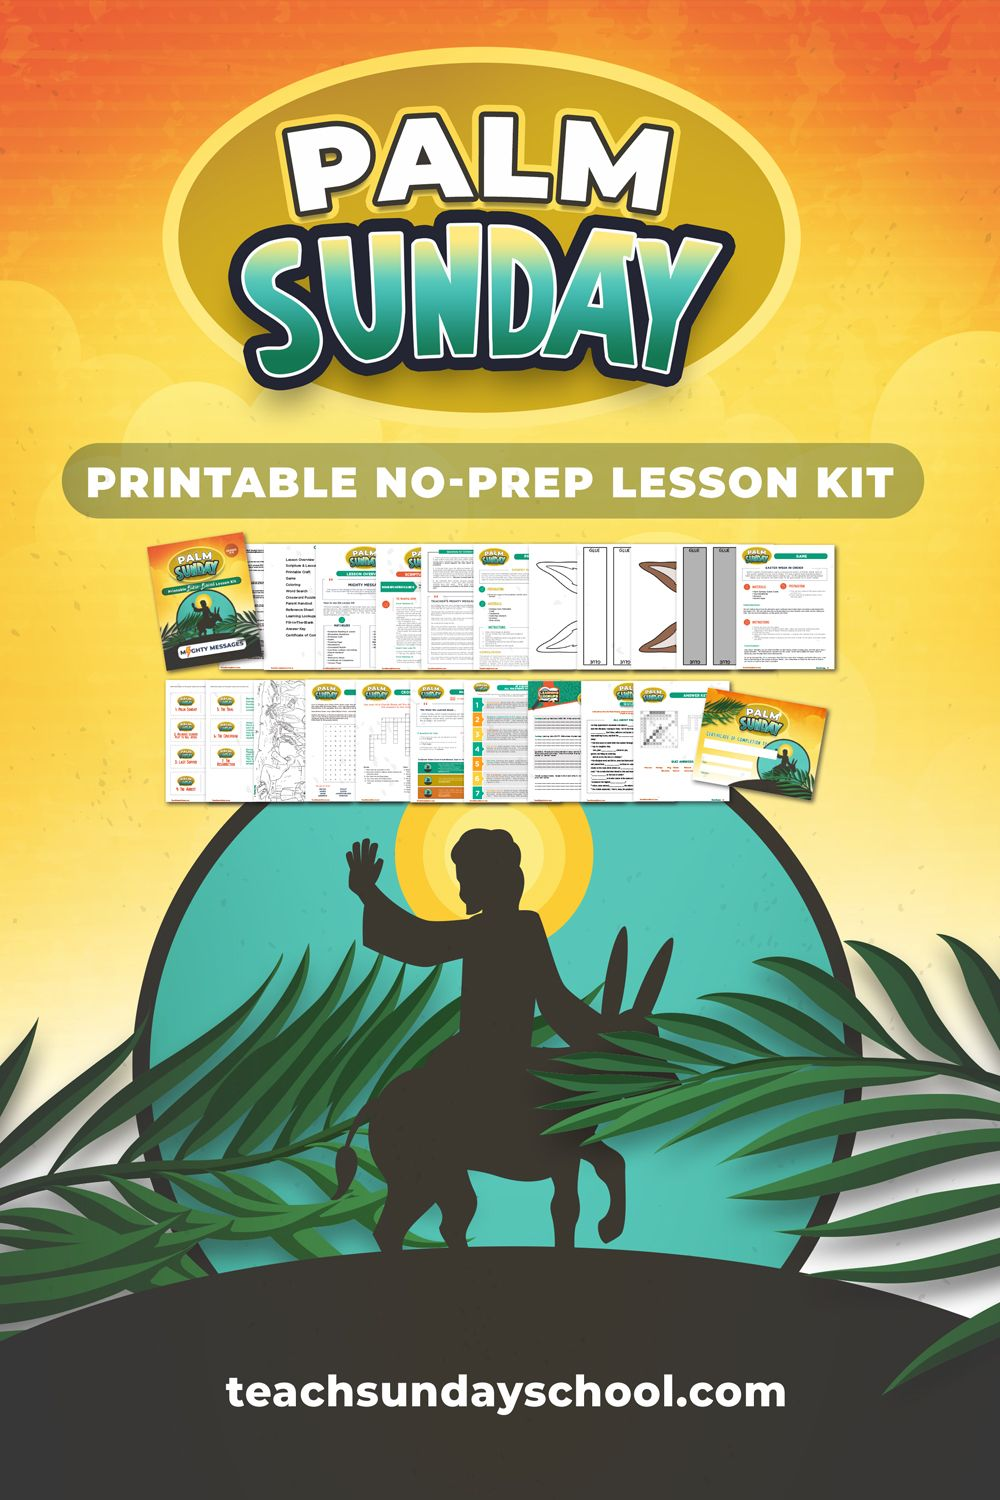 Palm Sunday Sunday School Lesson in 2020 (With images